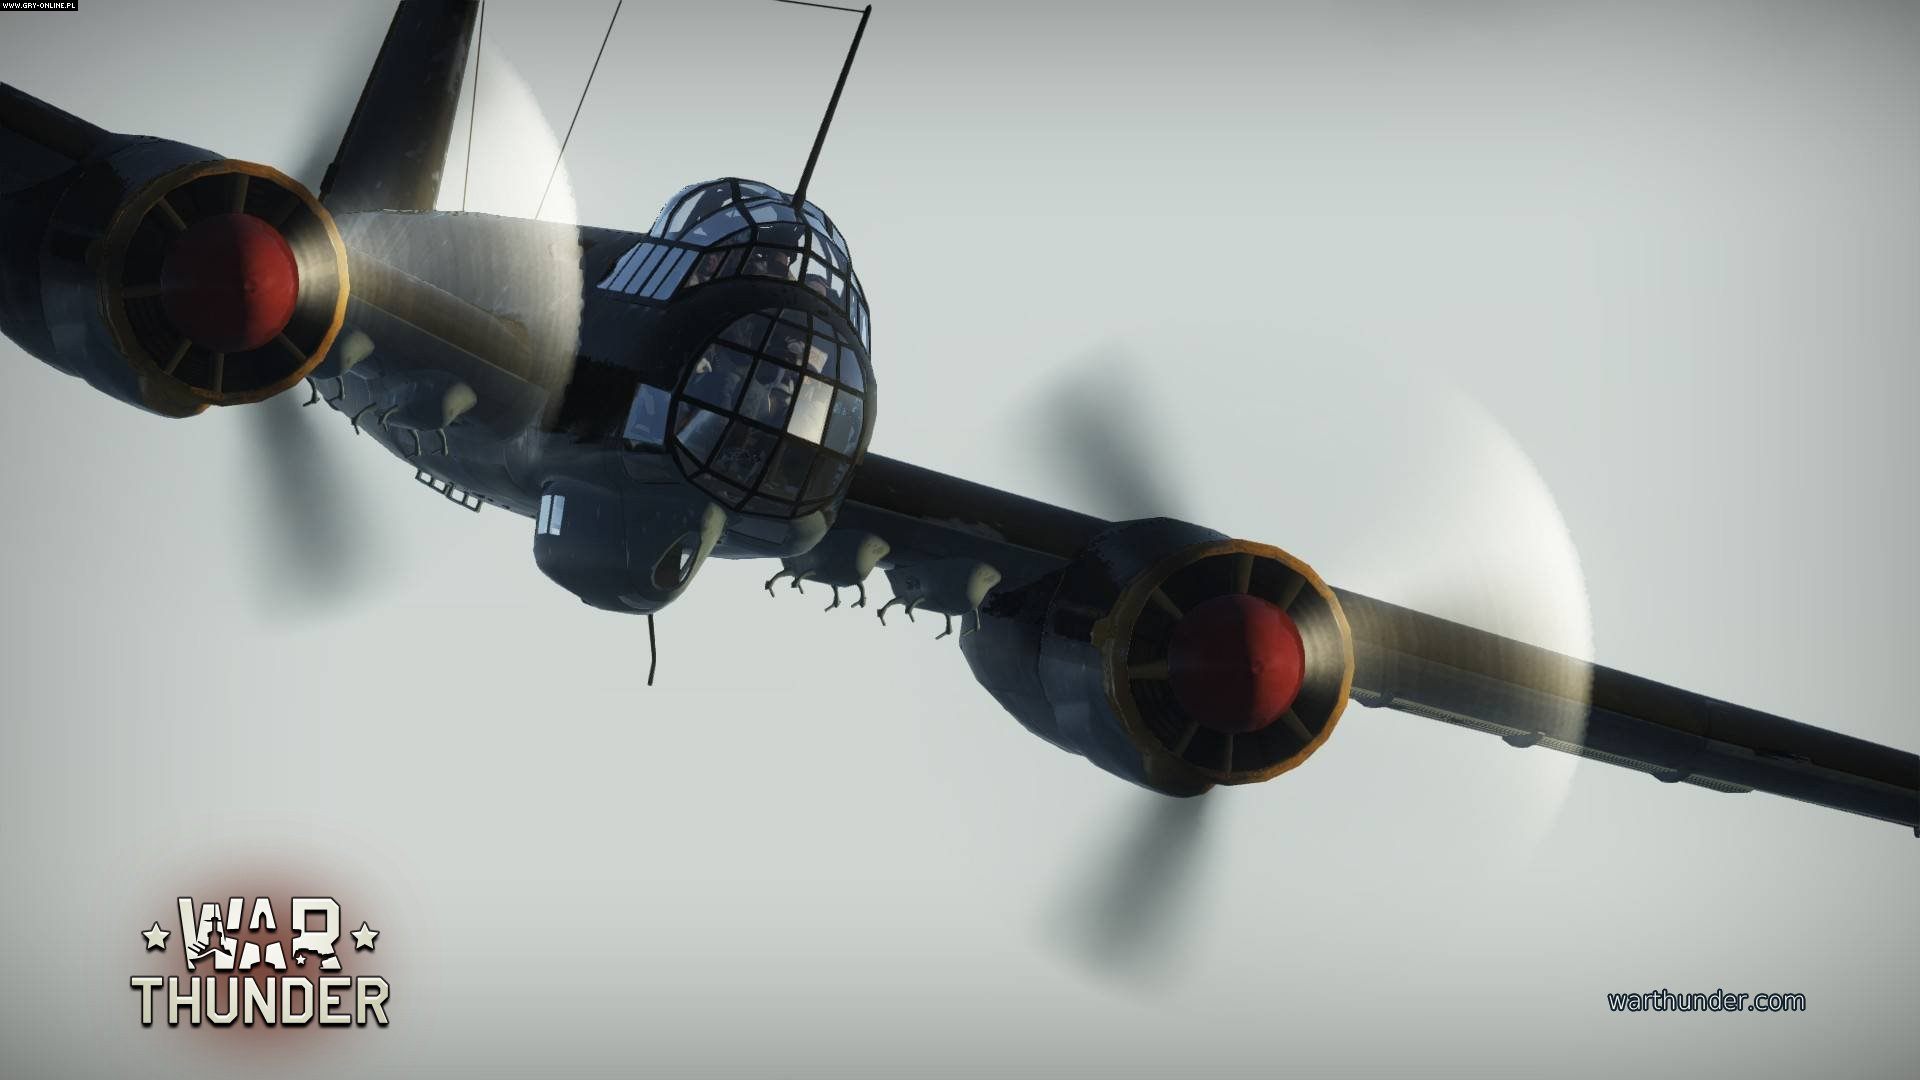 War Thunder PC, PS4, XONE Gry Screen 299/476, Gaijin Entertainment